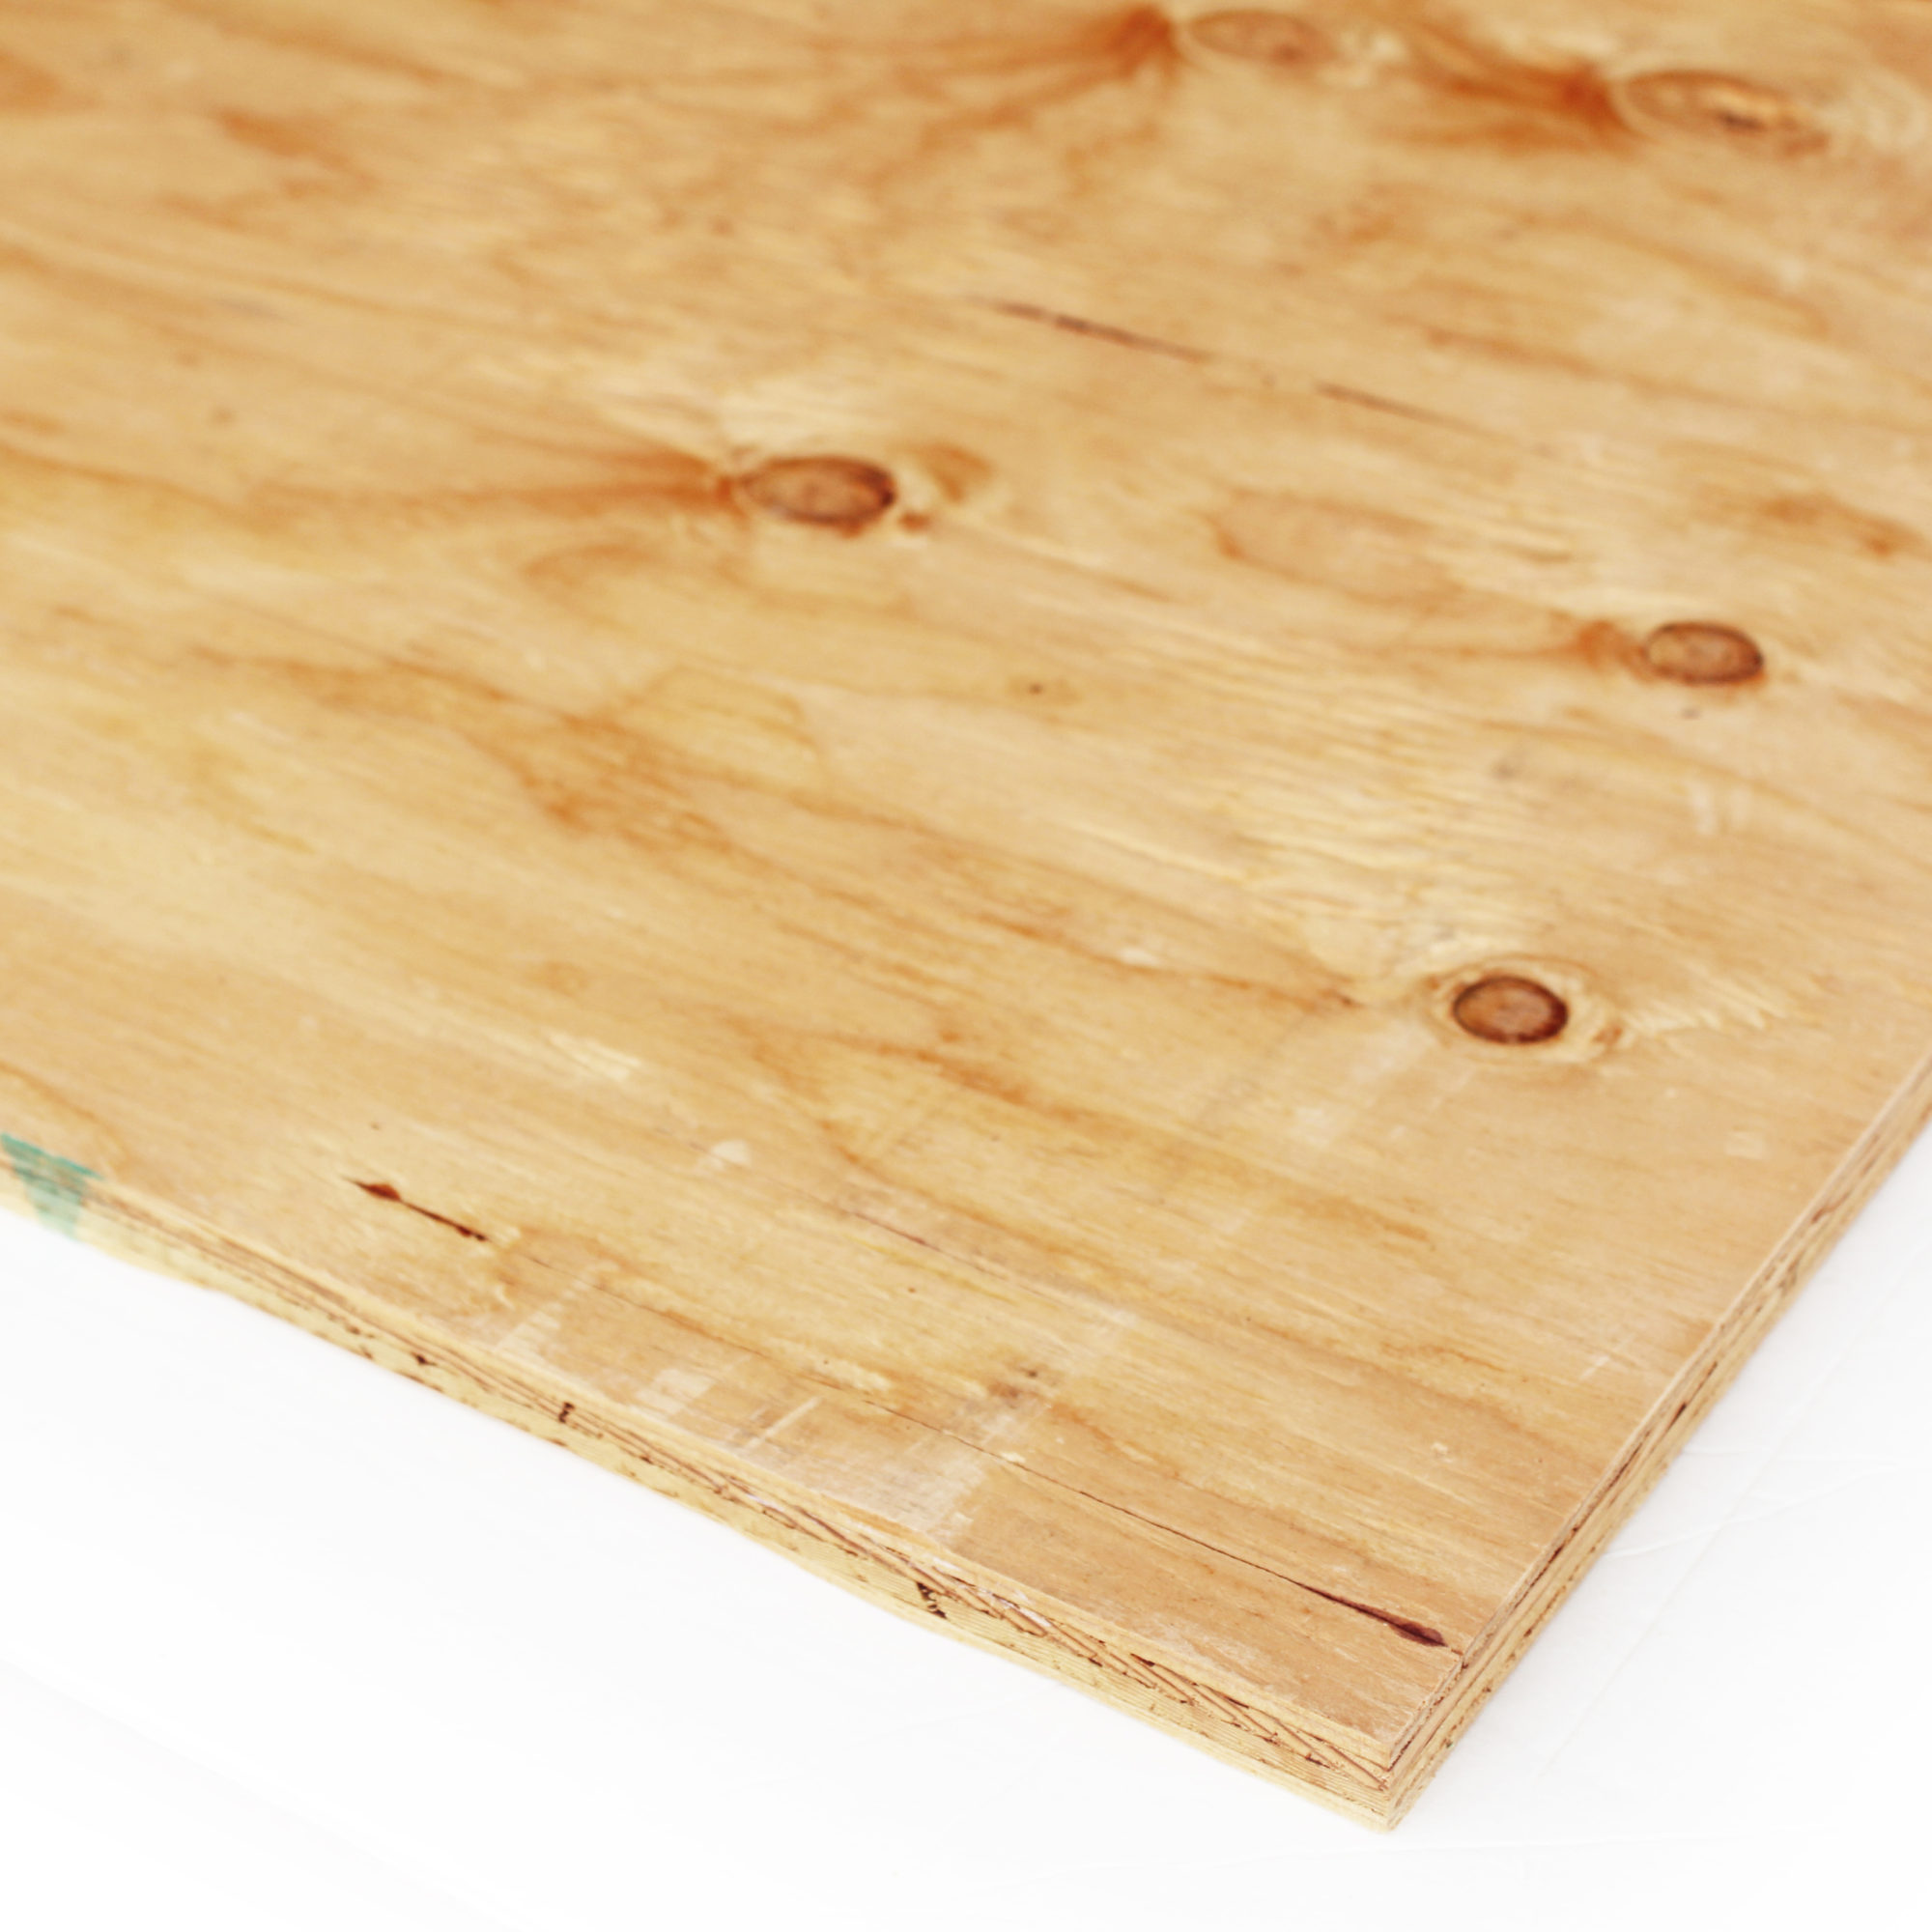 CDX DOUGLAS FIR PLYWOOD